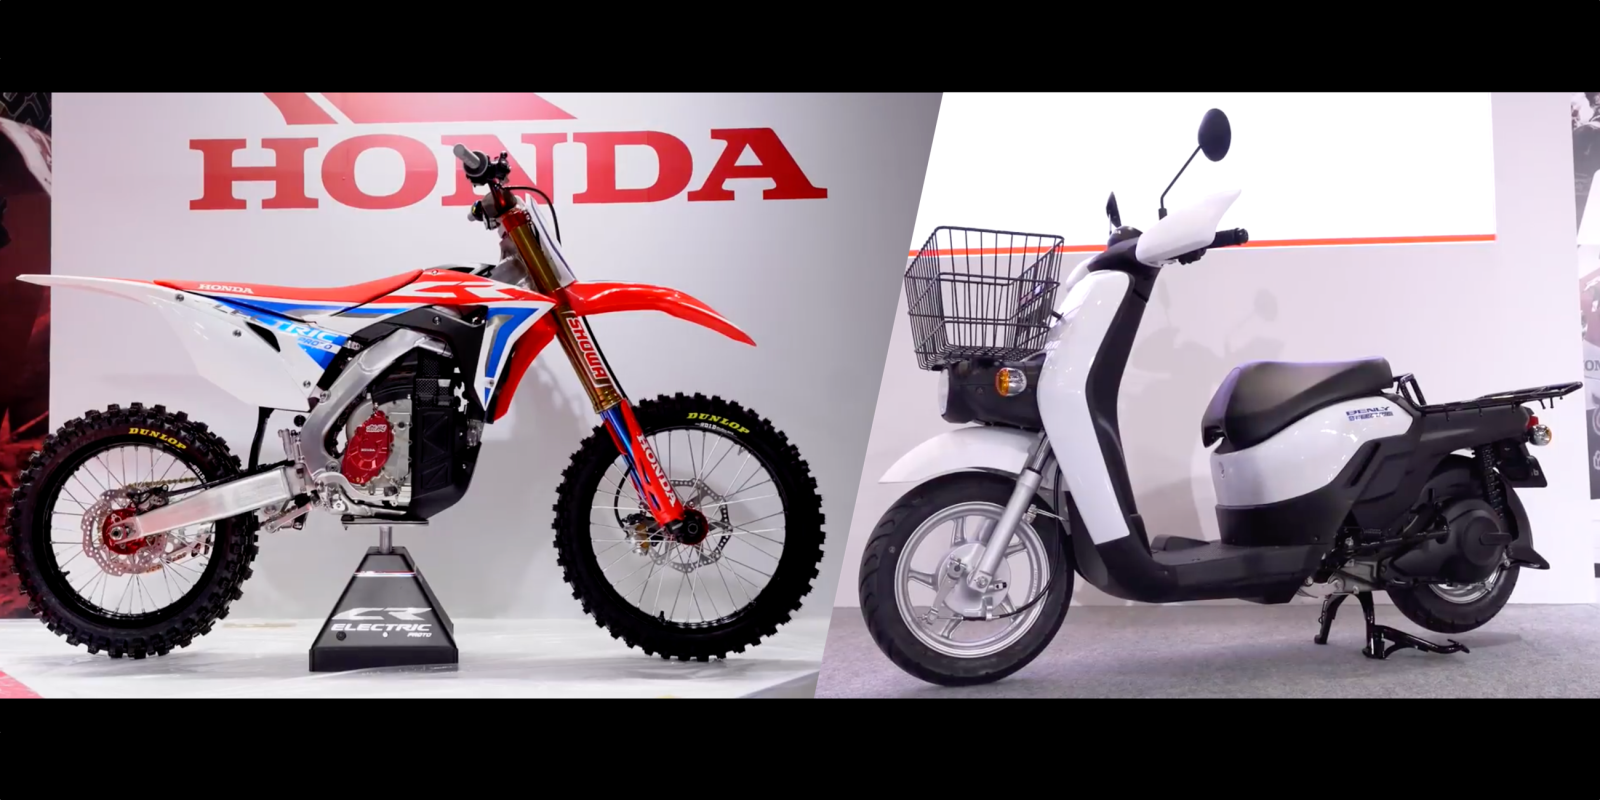 820ec8162 Honda, Yamaha, Suzuki, and Kawasaki reportedly cooperating on electric  motorcycles